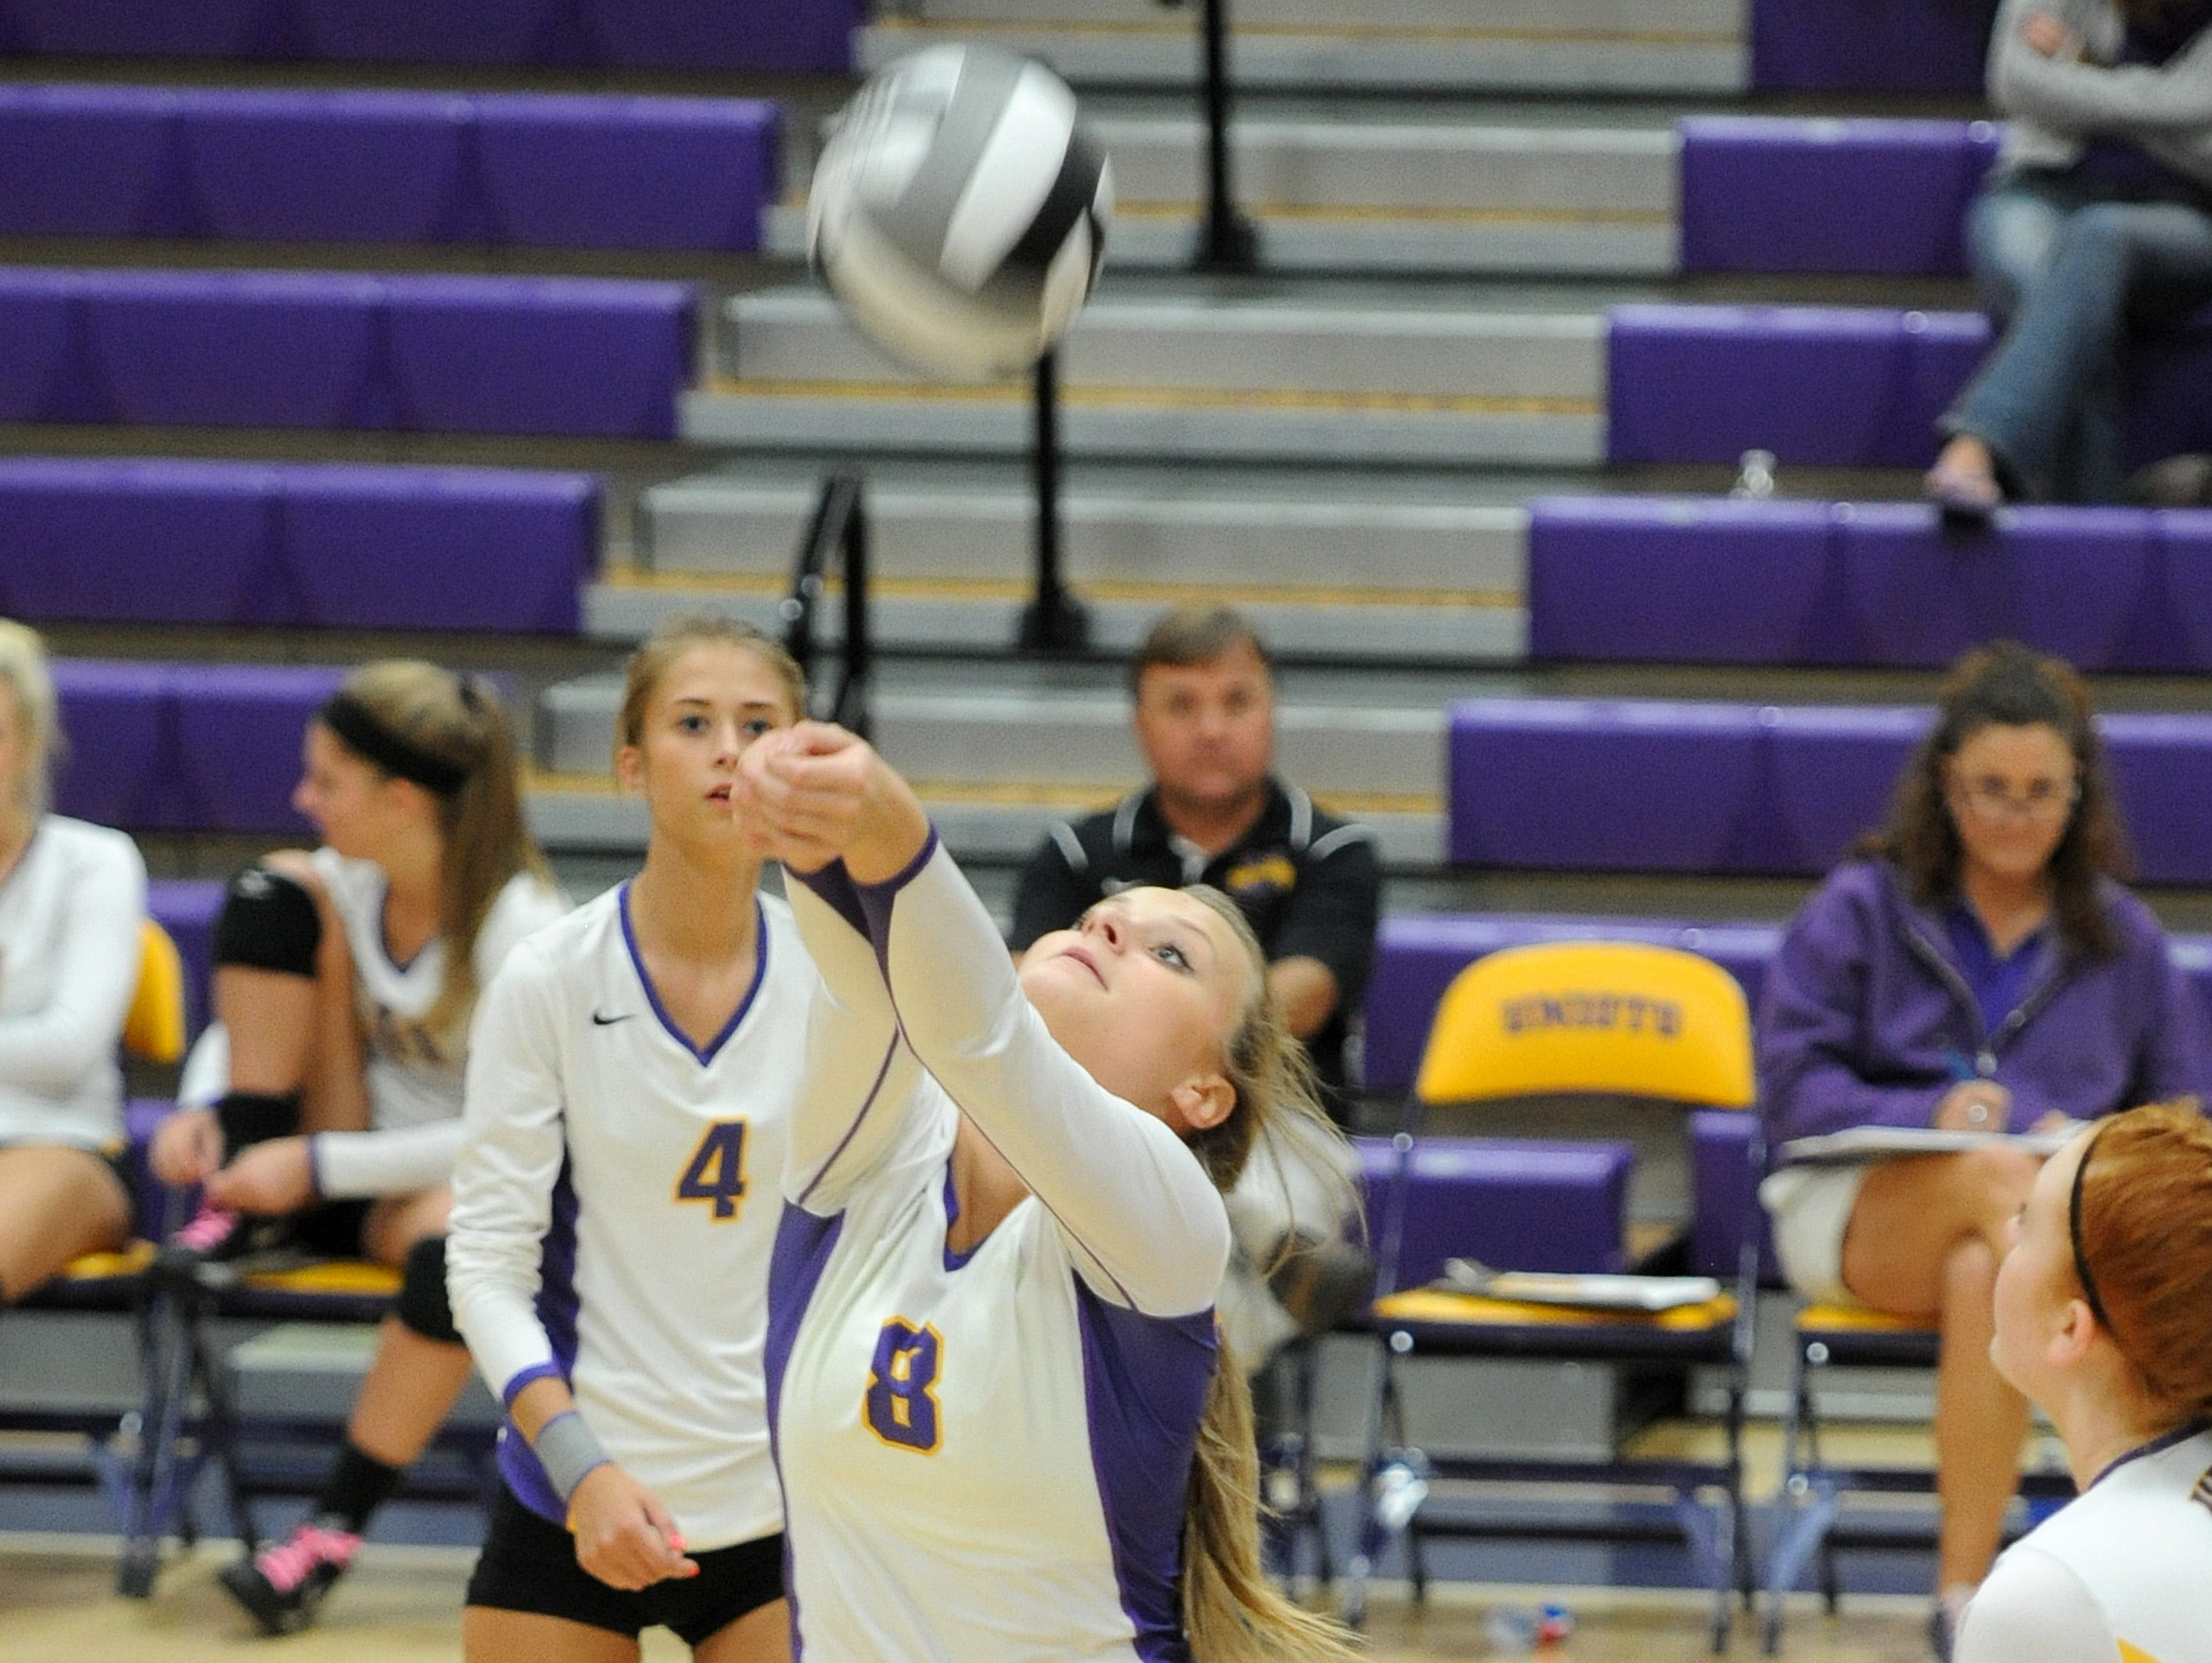 Unioto's Ashley Taylor bumps the ball during the second match against Zane Trace at Unioto on Thursday. the final score was Unioto 3, Zane Trace 0.